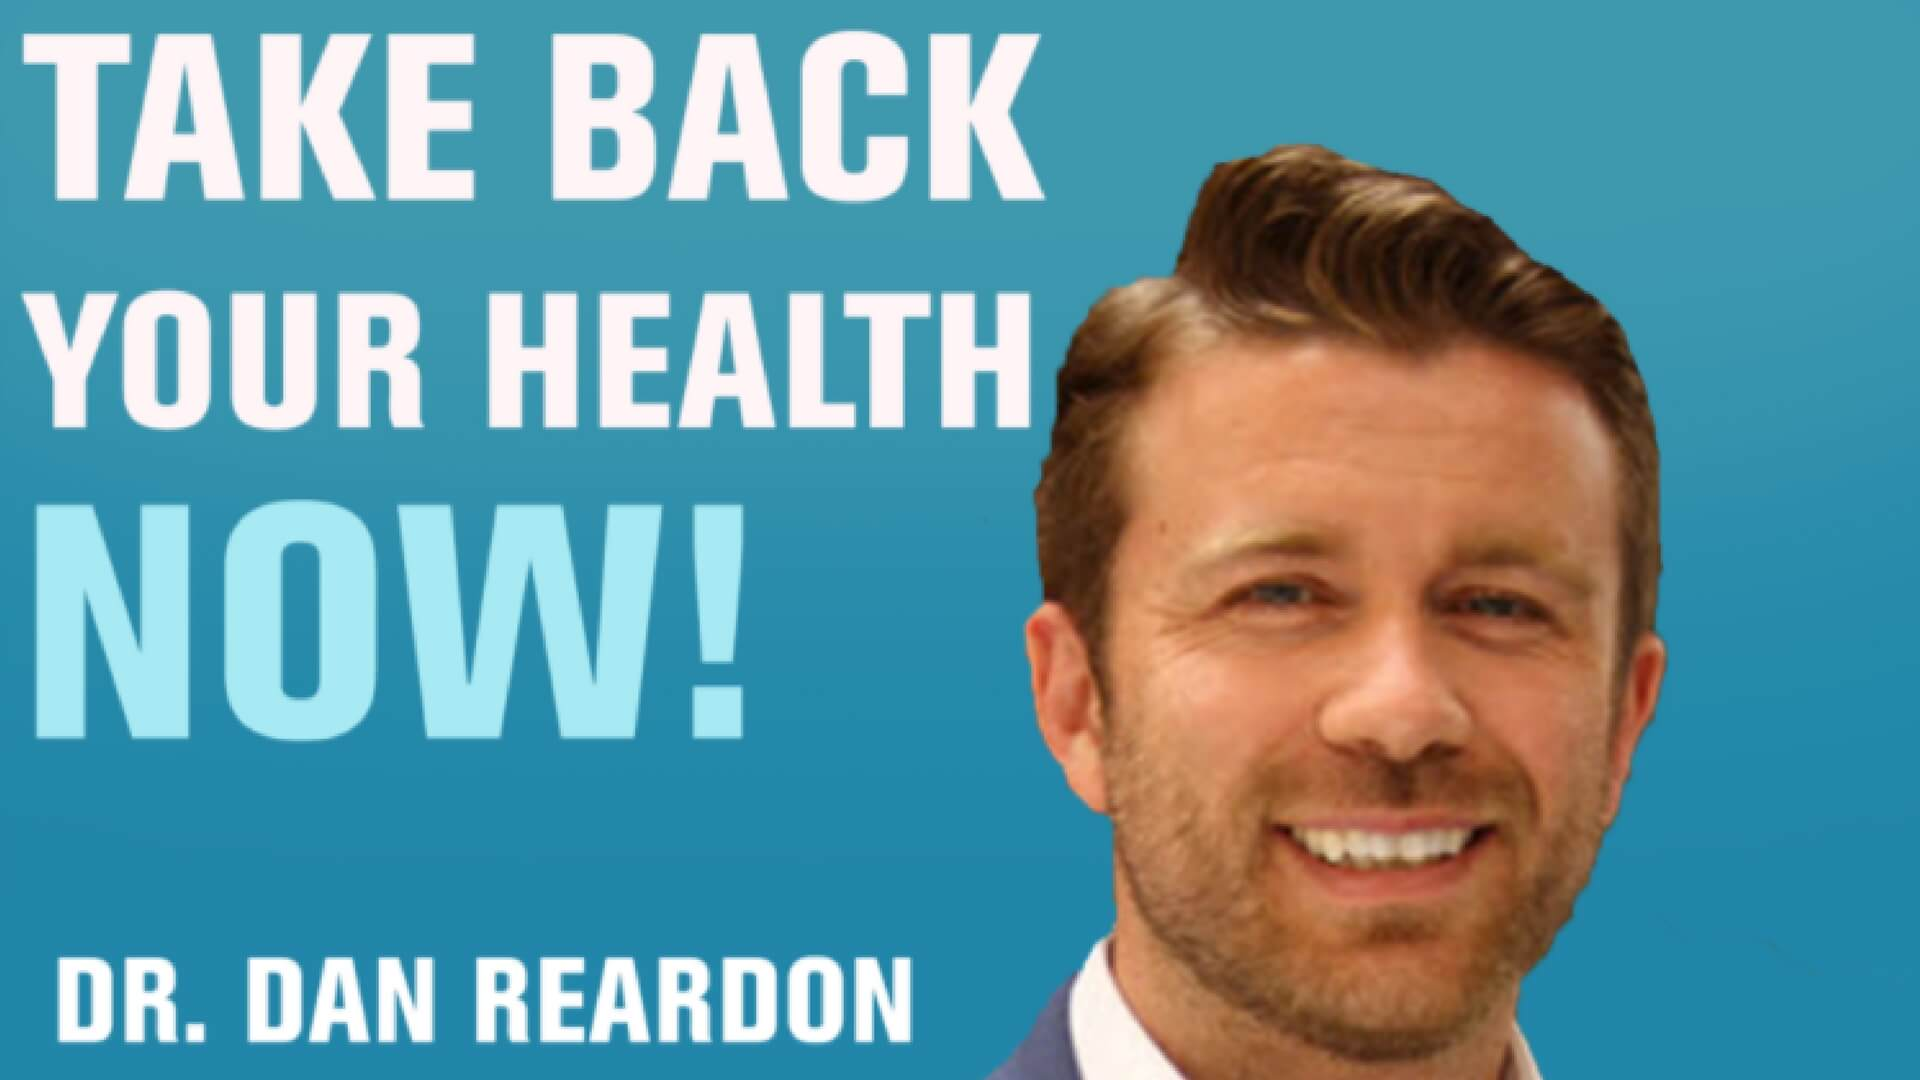 Podcast: Take Back Your Health!